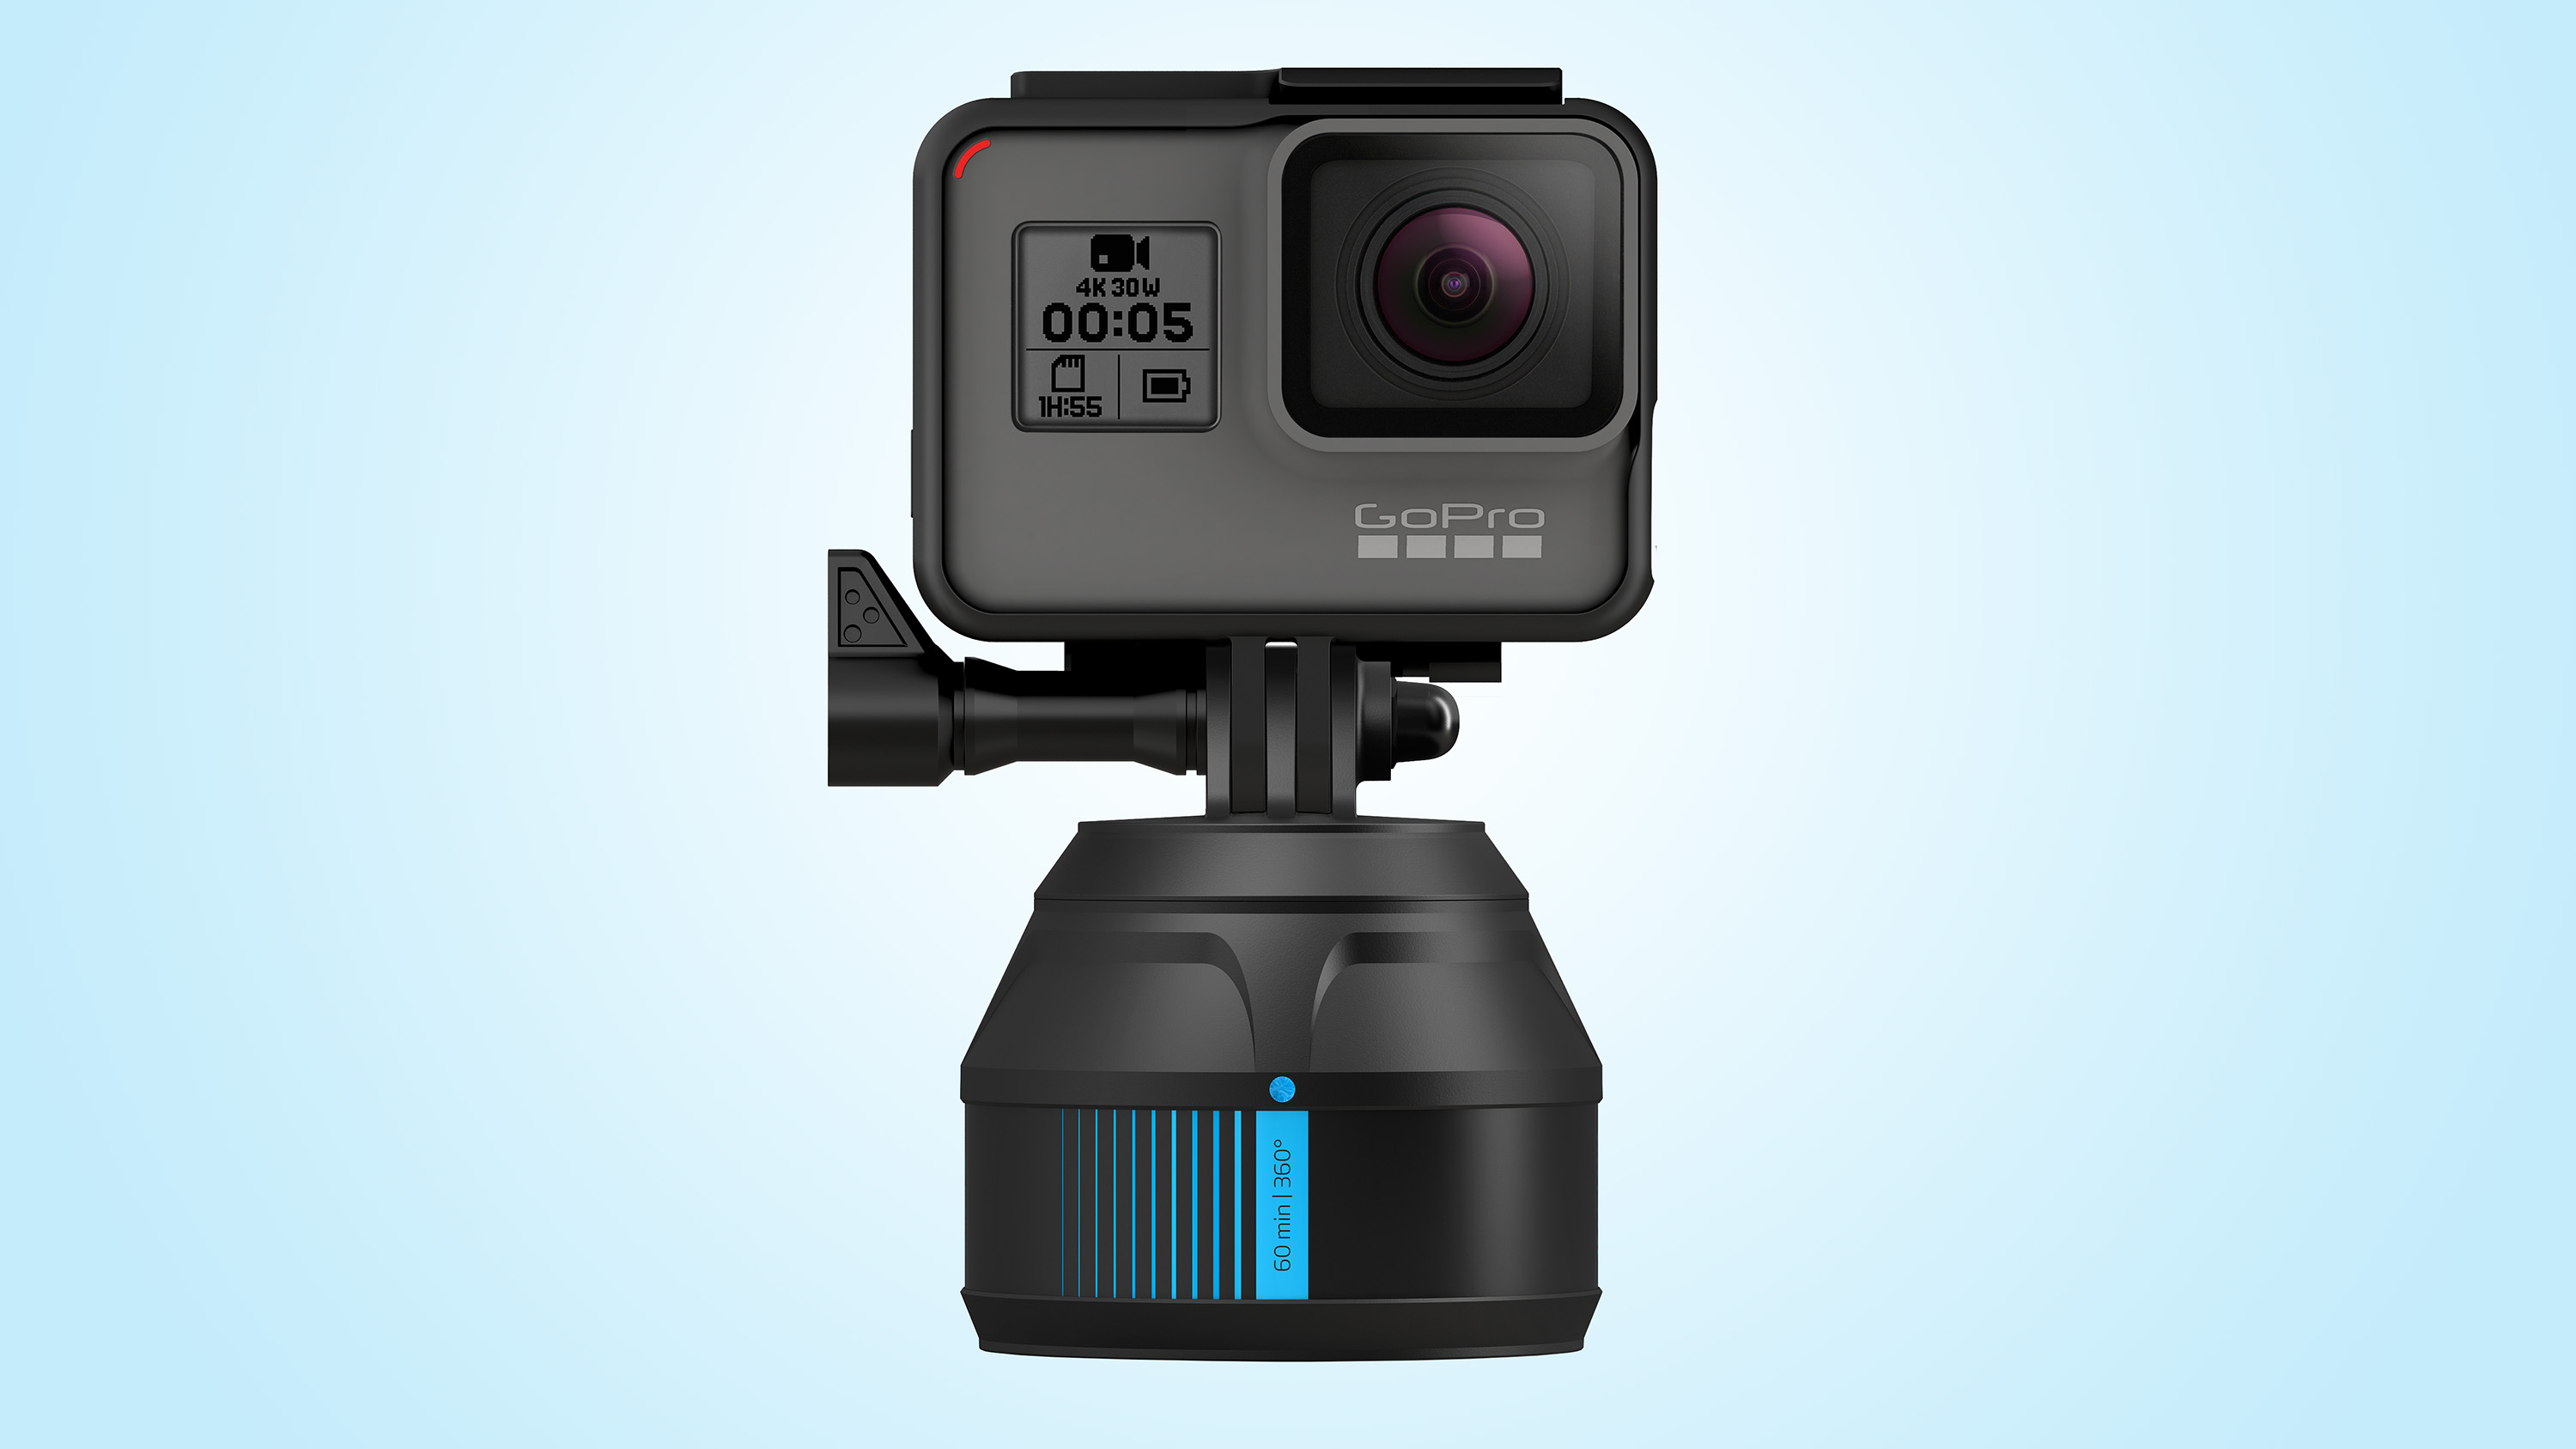 2e7fd01cfeb540 With the fantastic options shooting timelapse stills and video with GoPro  cameras, a simple way to create dynamic results is to make the camera  rotate ...